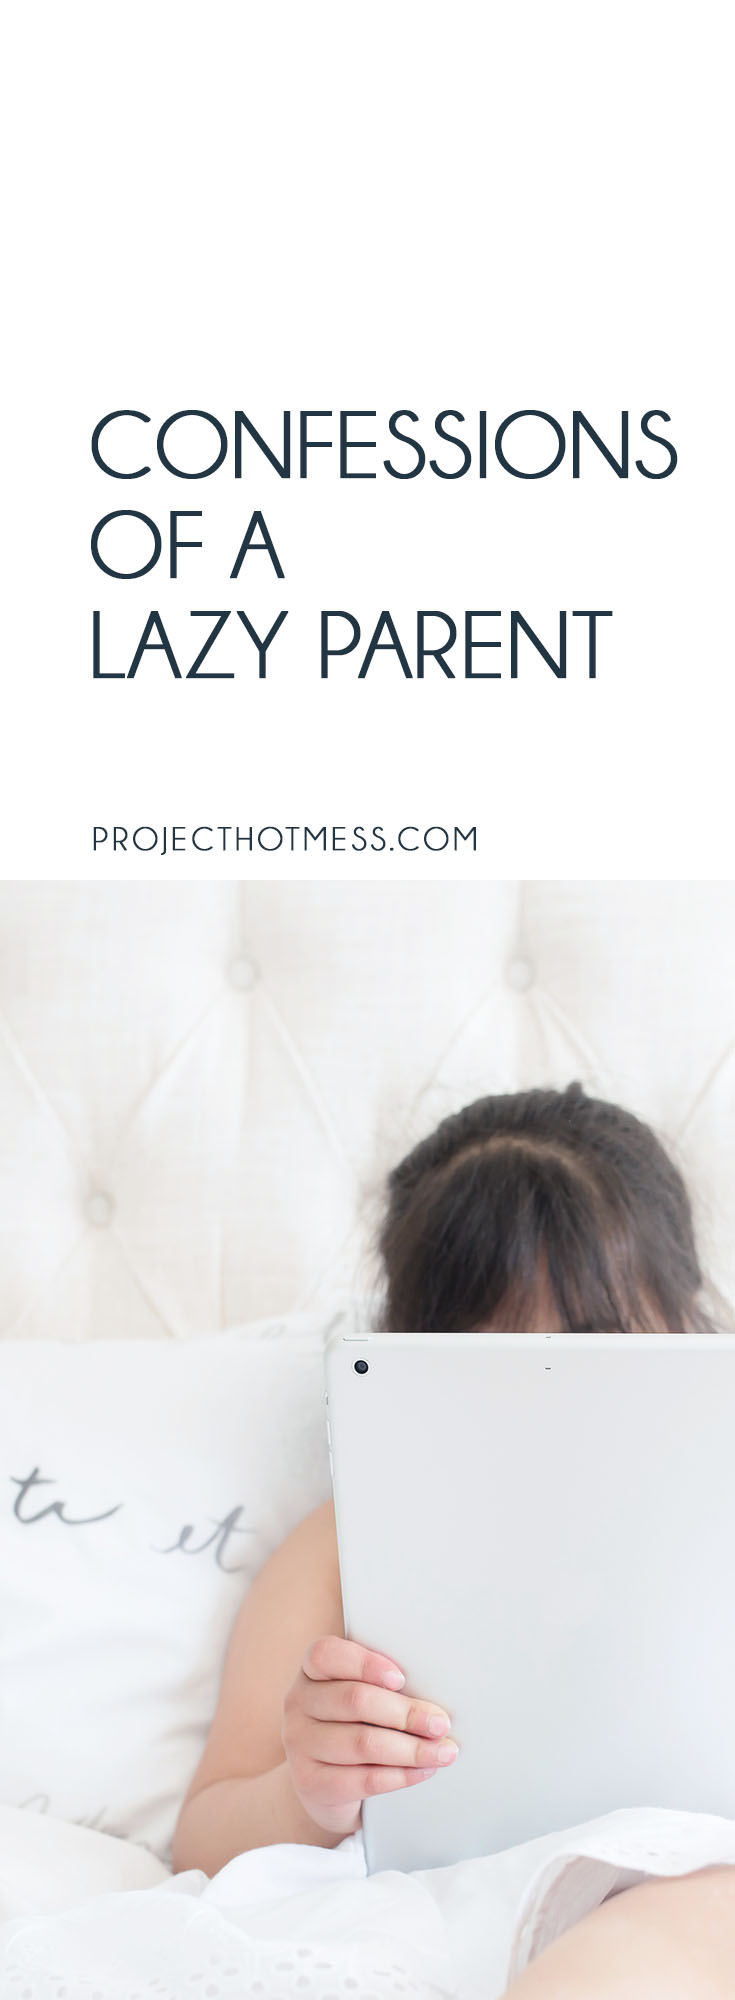 I'm not one of those Pinterest Perfect mums. I probably fall a little more into the 'lazy parent' category. But I'm not convinced that's a bad thing really.